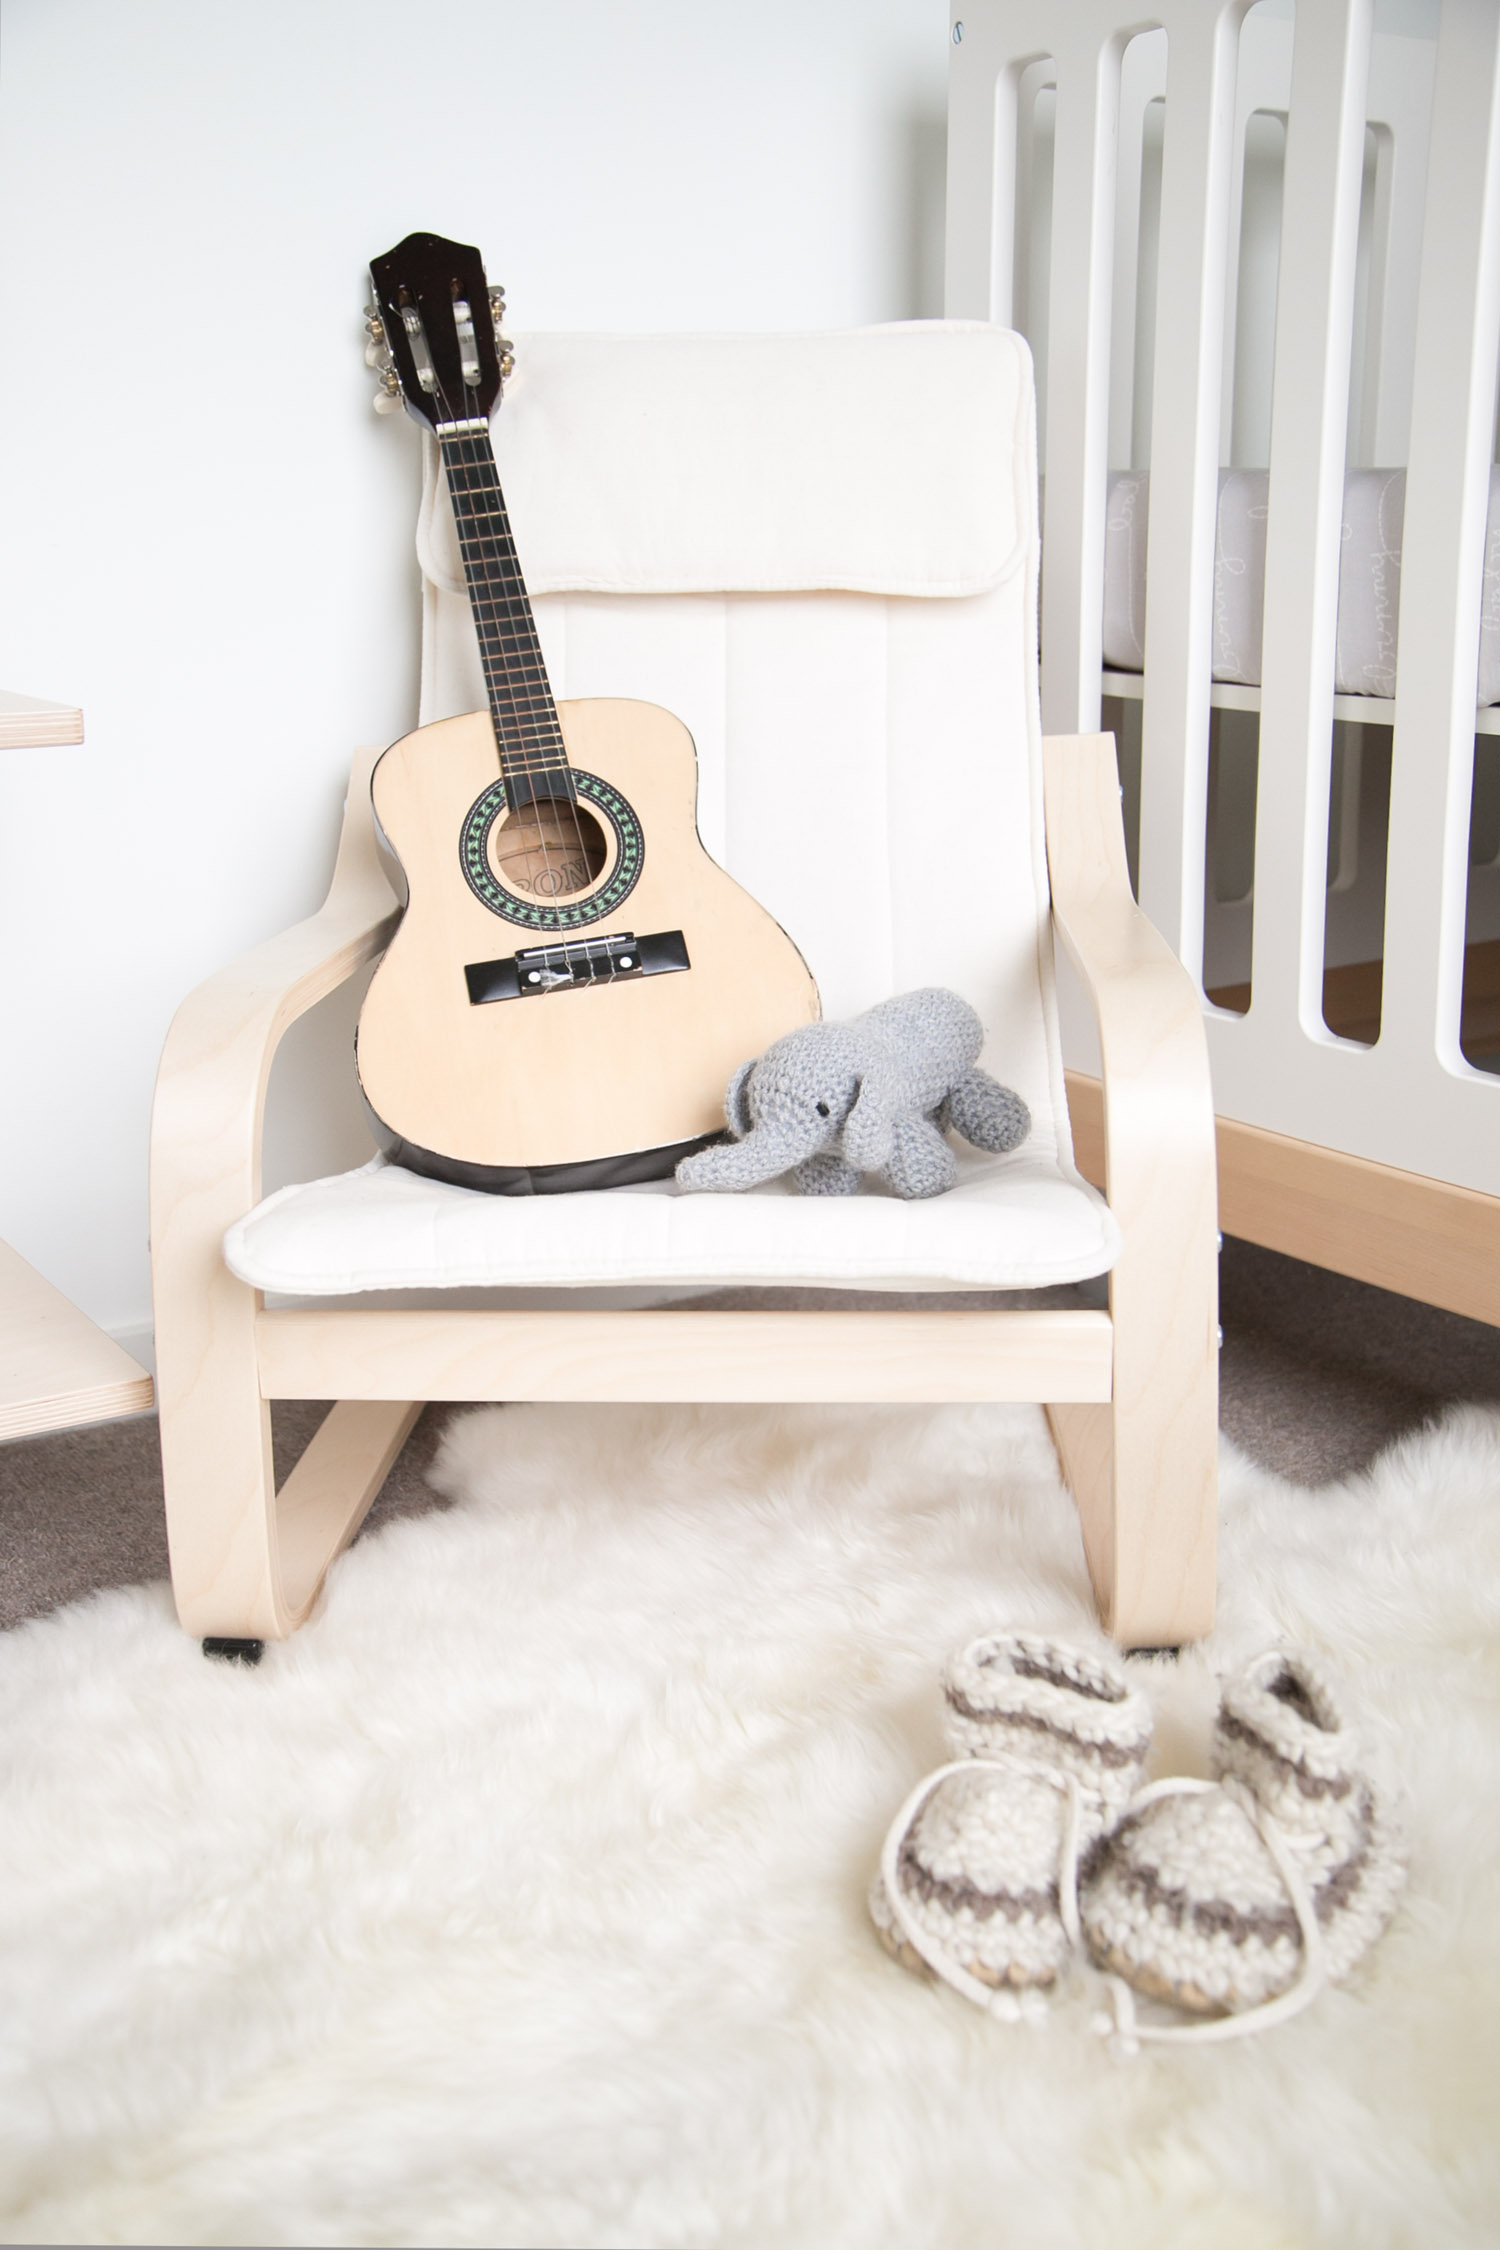 Mini chair with guitar